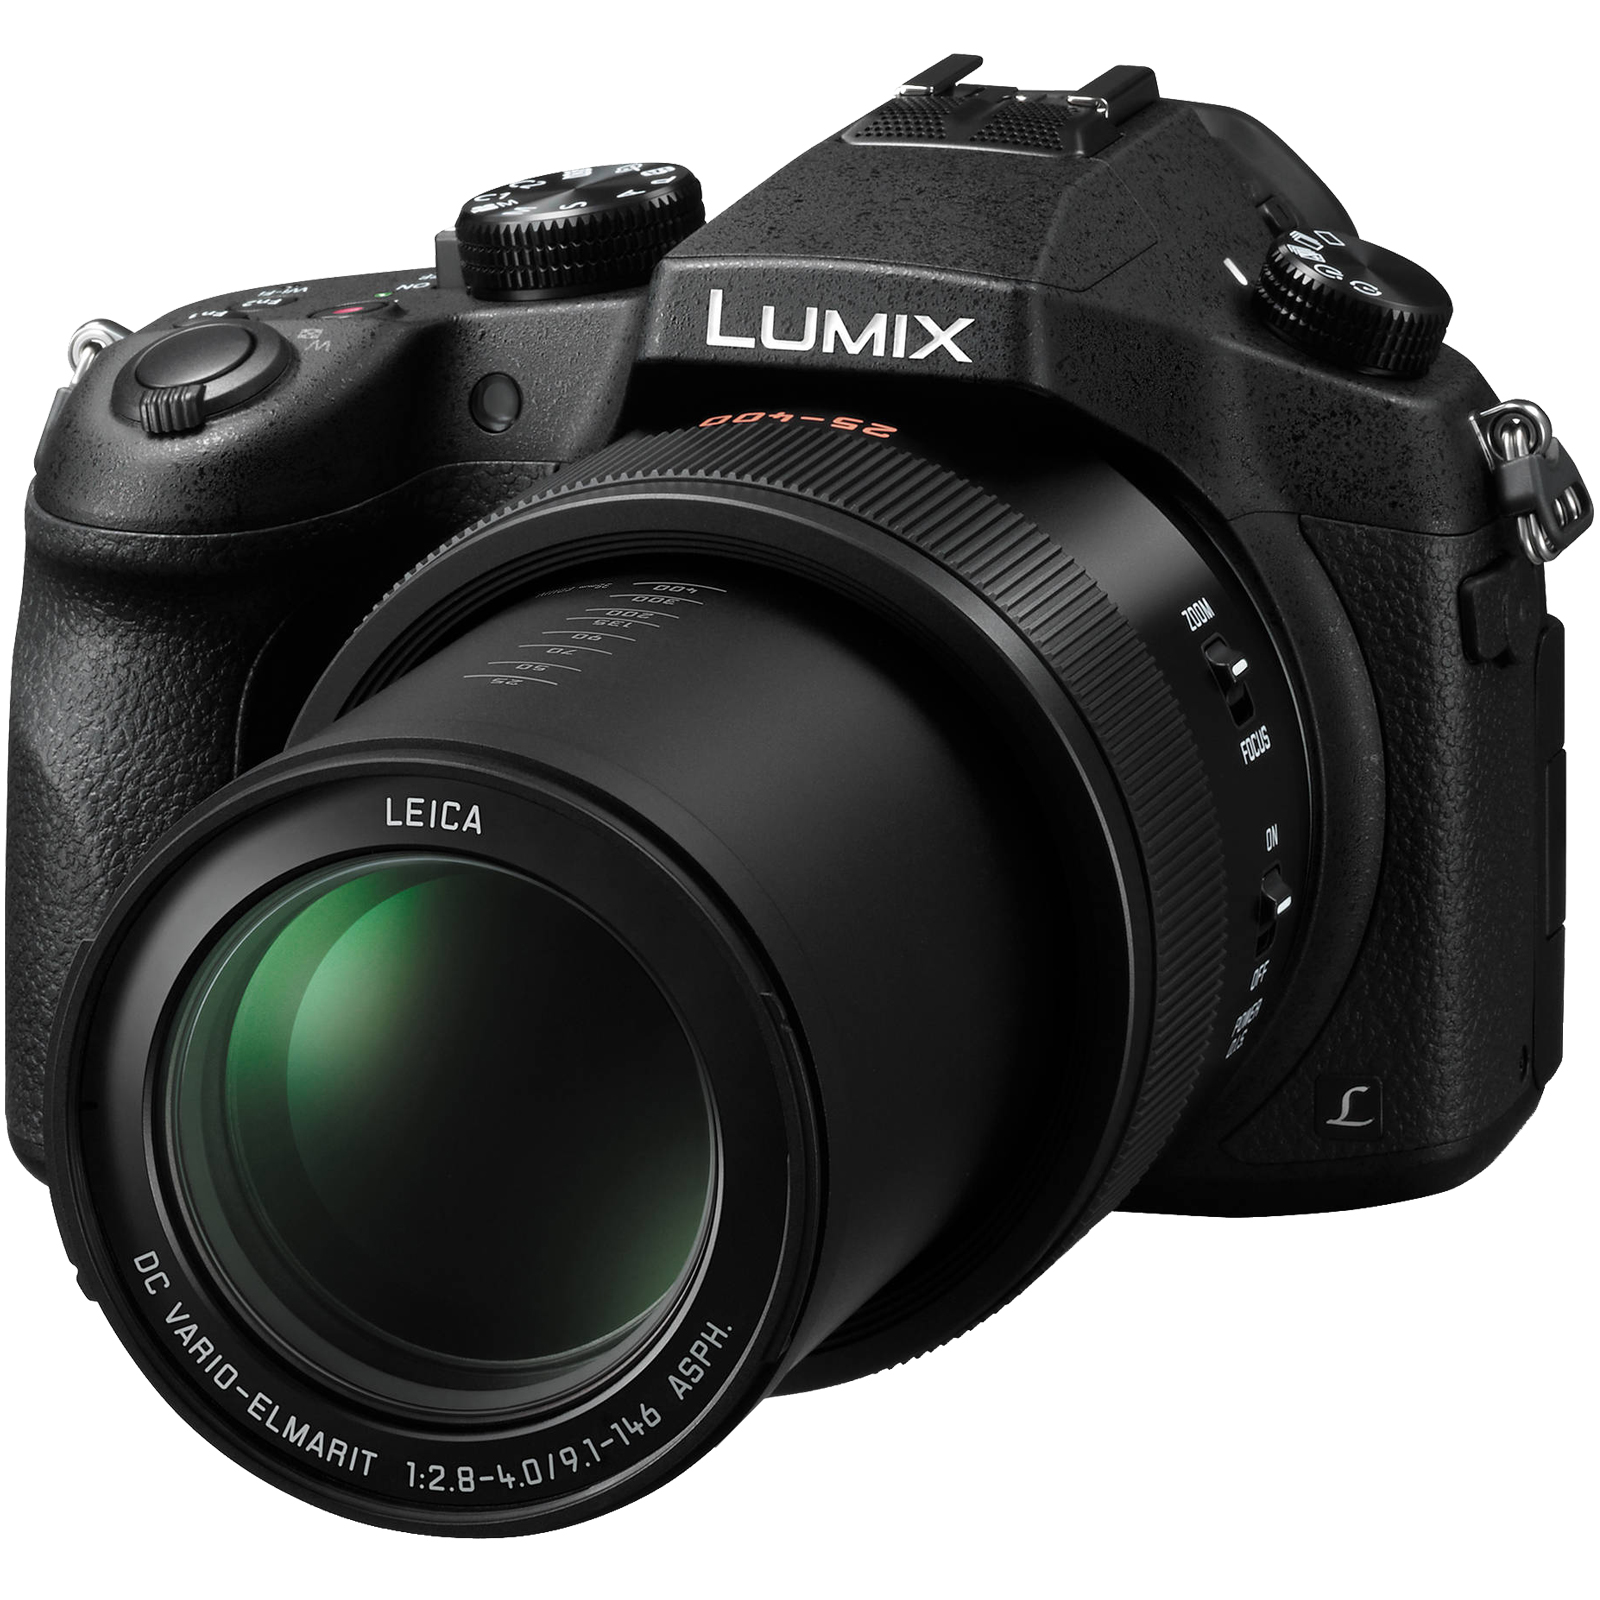 Panasonic Lumix DMC-FZ1000 4K QFHD Wi-Fi Digital Camera